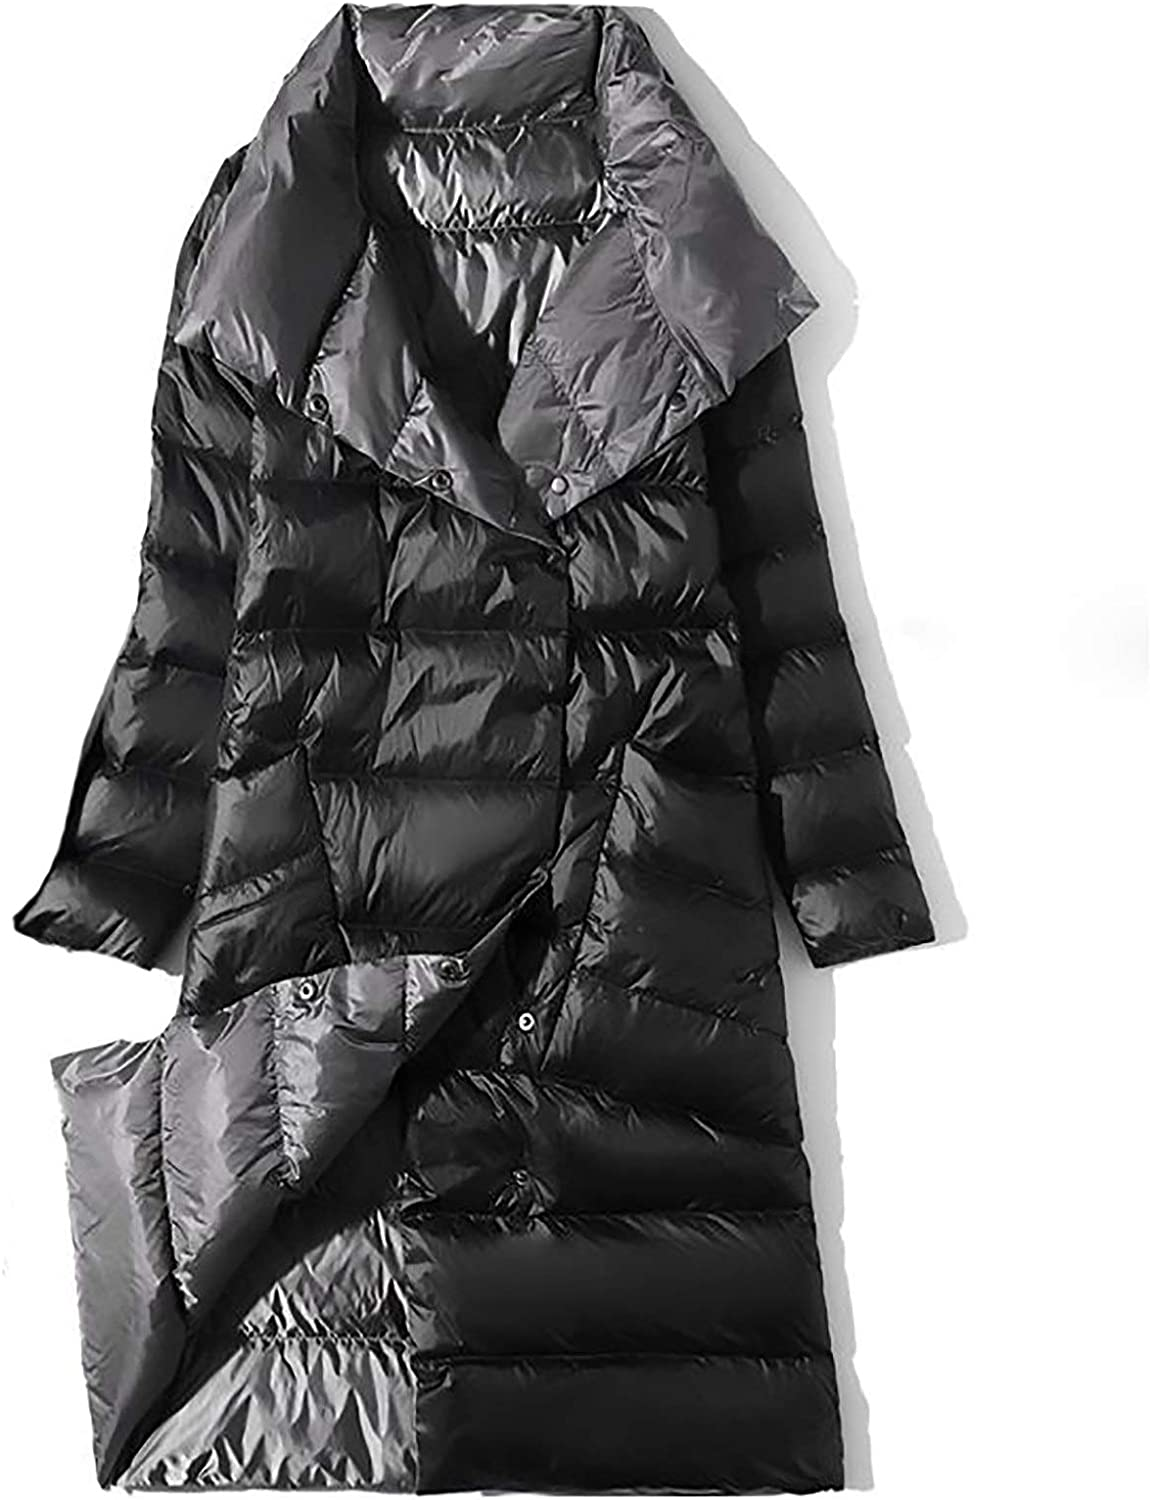 2020 Womens Animer and price revision Hooded Down Jacket White Dou Duck Female Clearance SALE Limited time Coats